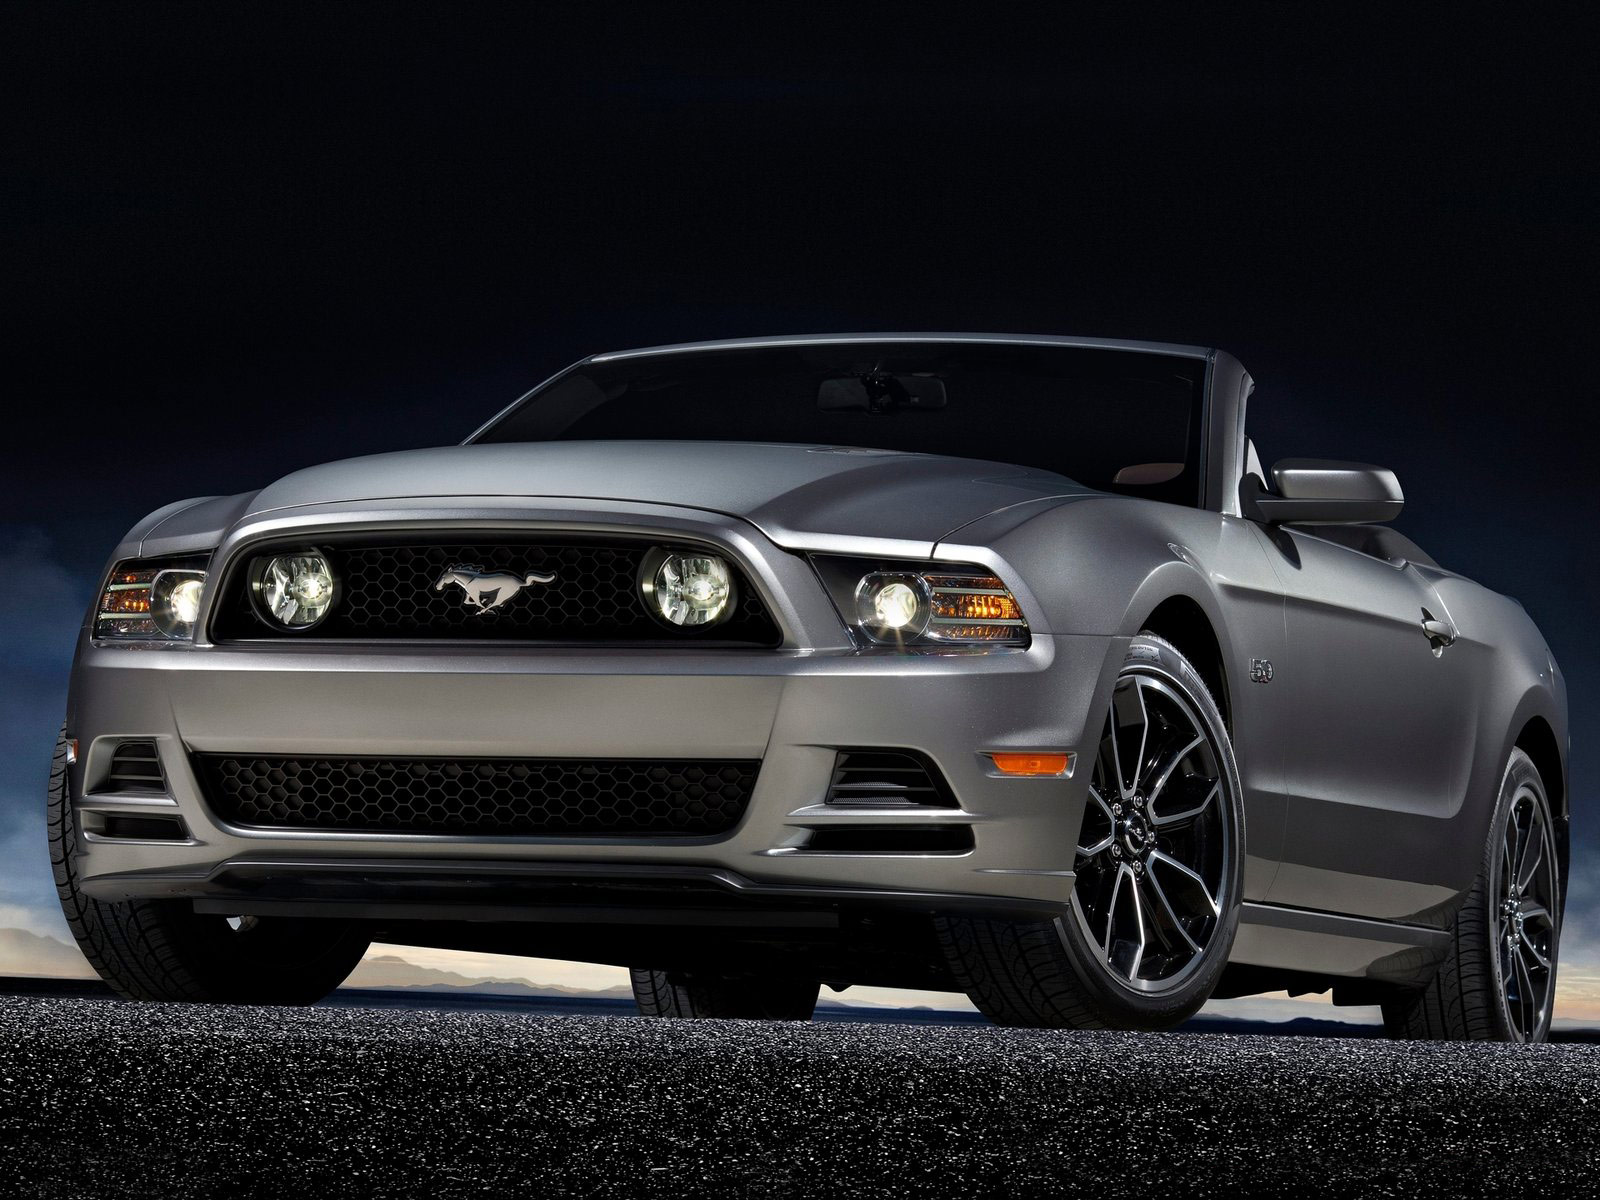 gambar mobil ford mustang gt 2013. Black Bedroom Furniture Sets. Home Design Ideas